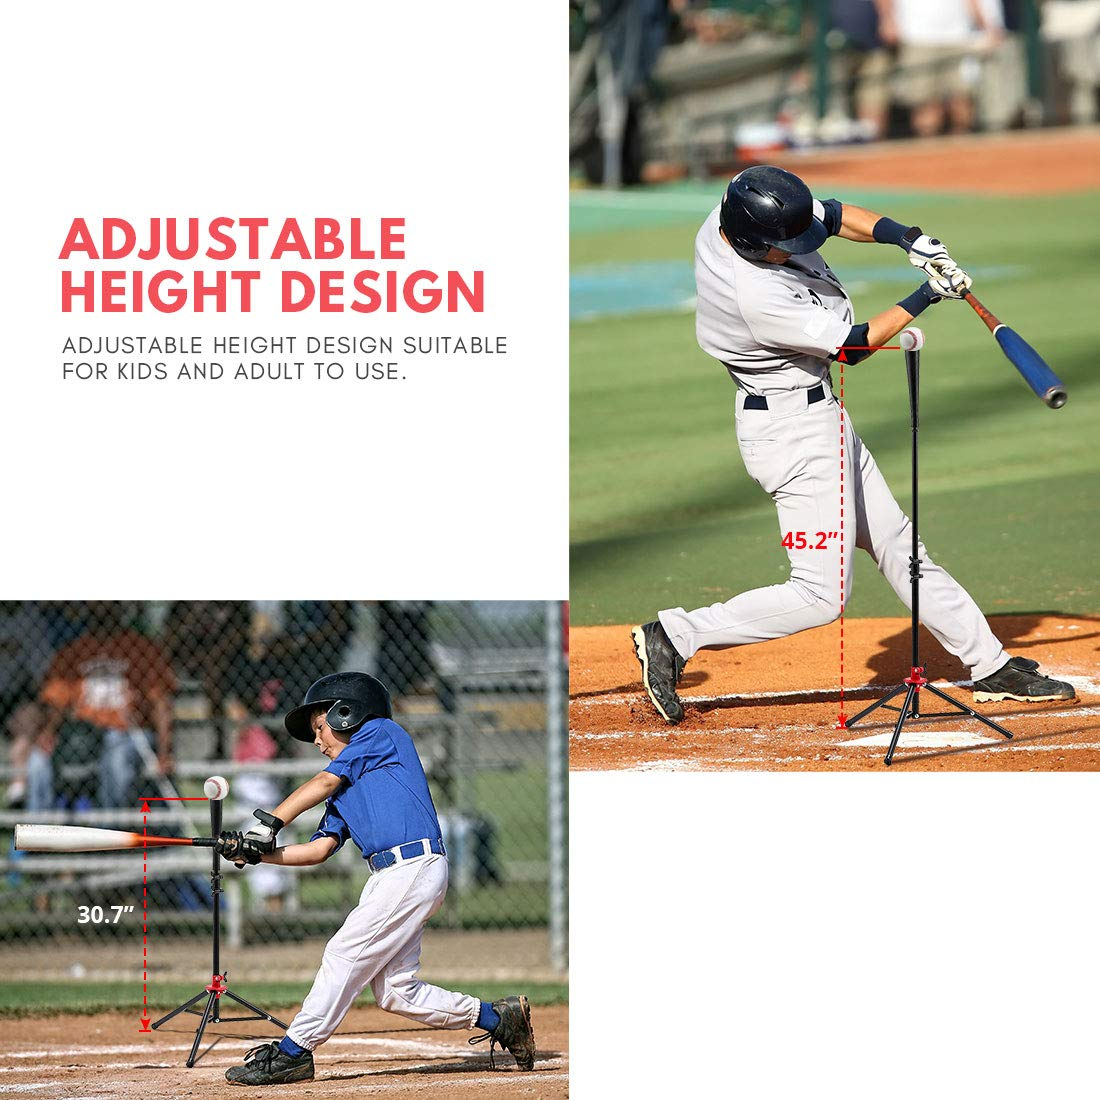 Zupapa 12 Pack Baseballs /& Tee /& 7 x 7 Baseball Softball Hitting Pitching Net Practice Set Bonus Upgraded Vivid Strike Zone Practice Hitting Pitching Batting and Catching Great for All Ages